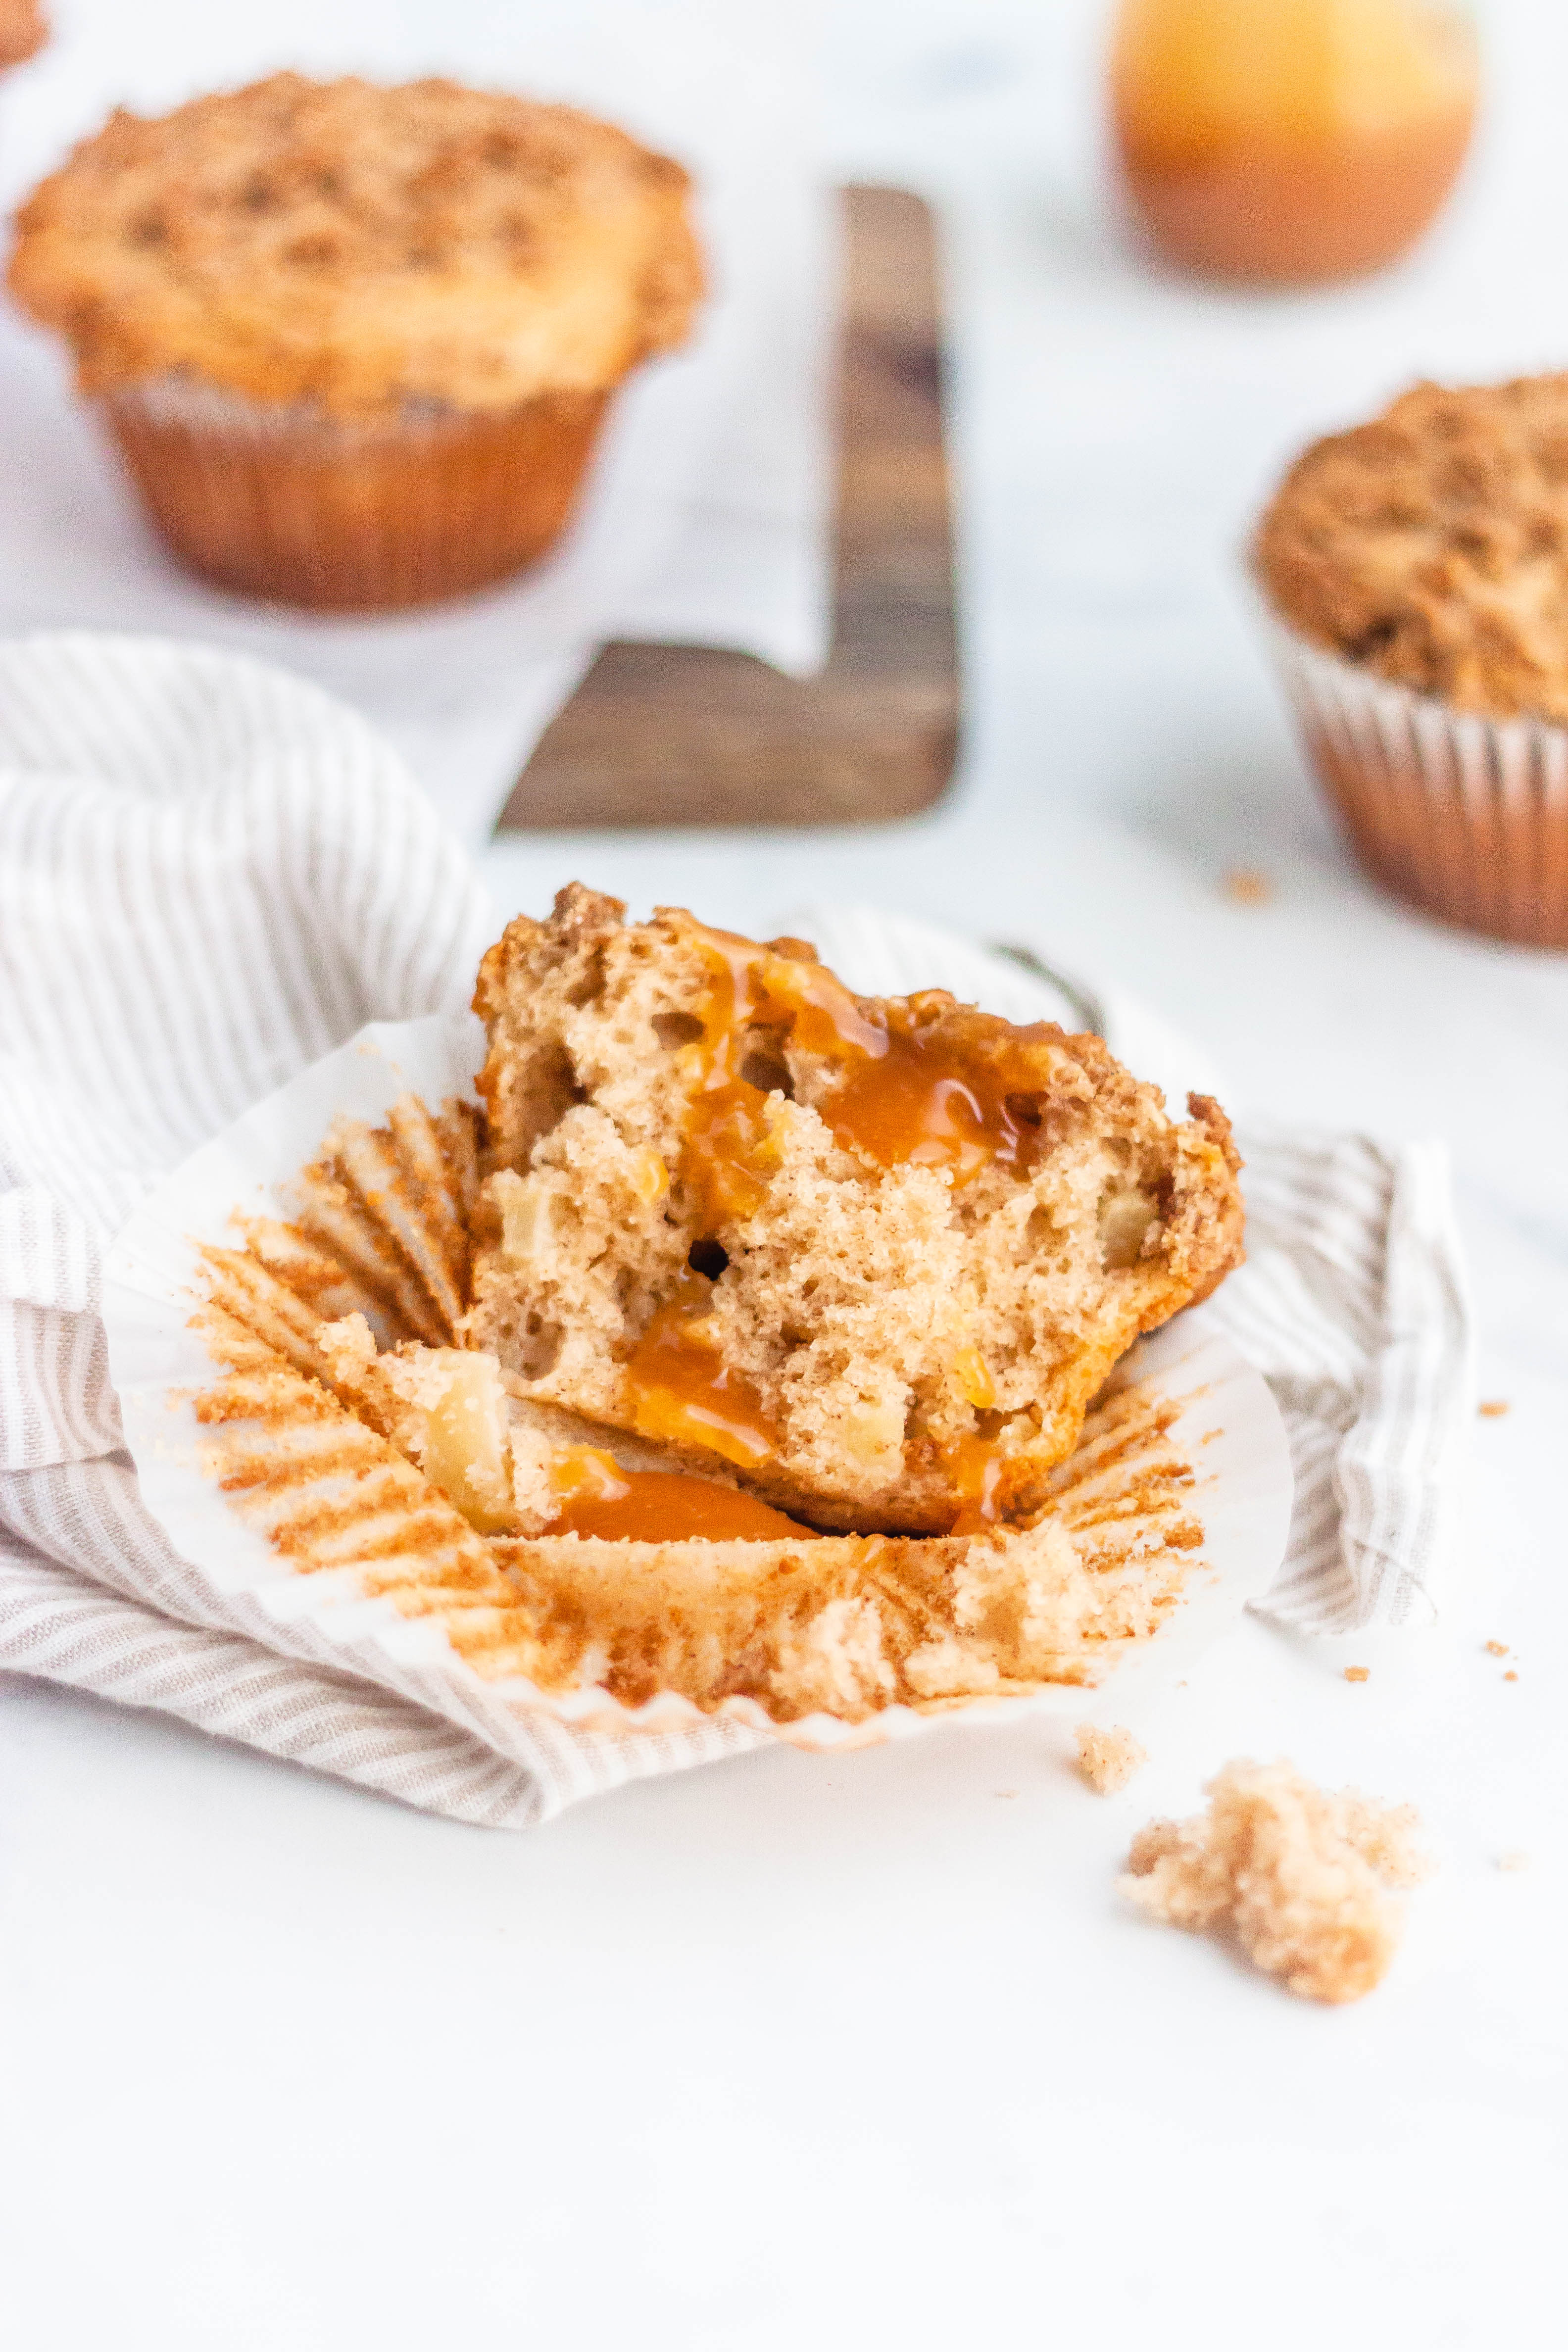 A caramel apple muffin cut in half